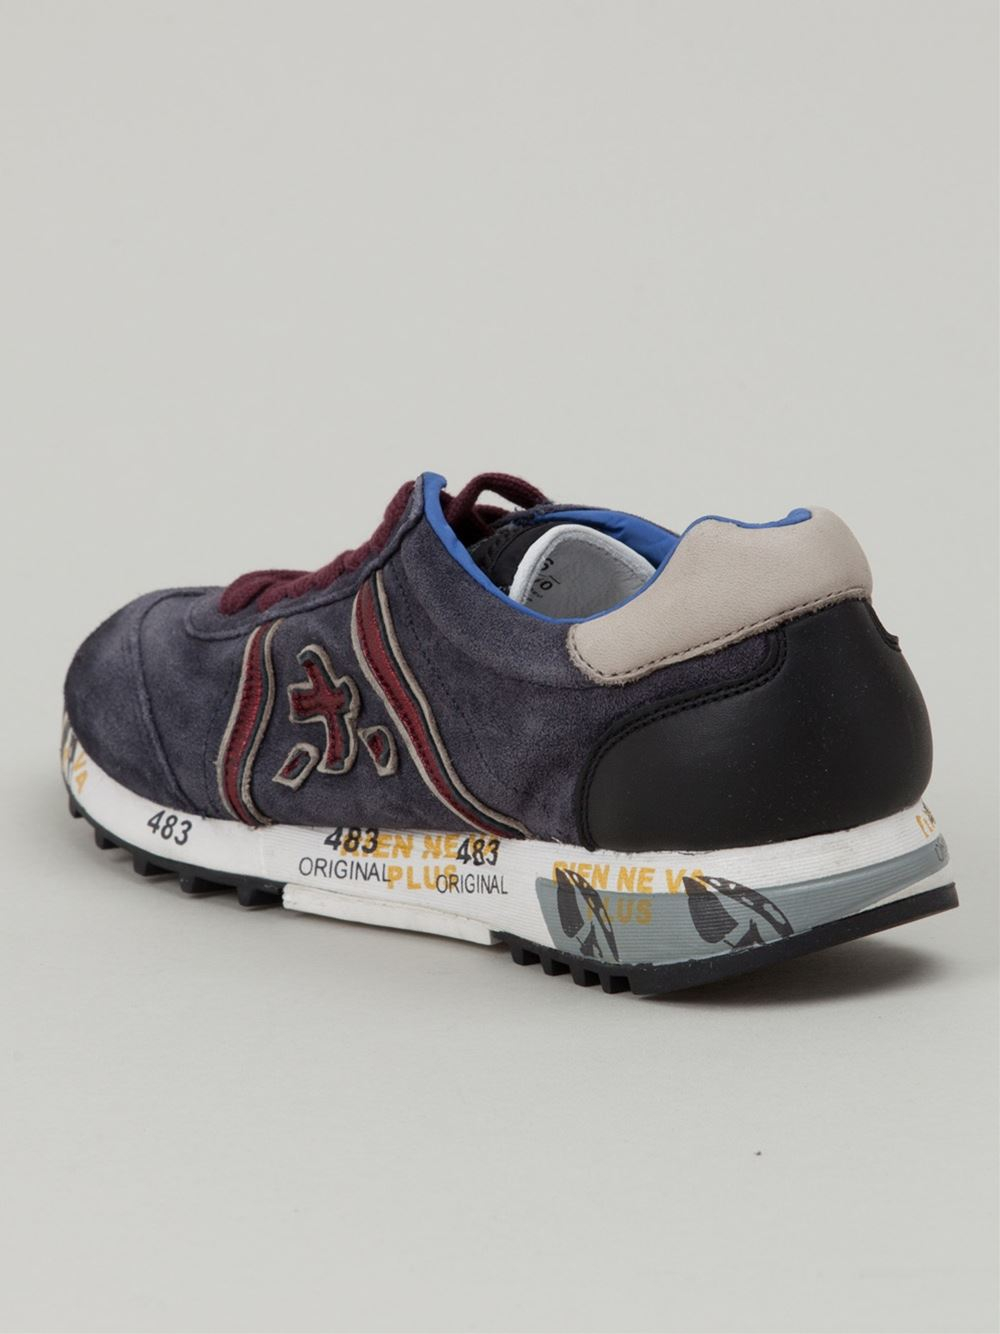 Blue and gray Lucy sneakers Premiata NWO6ccc6rl